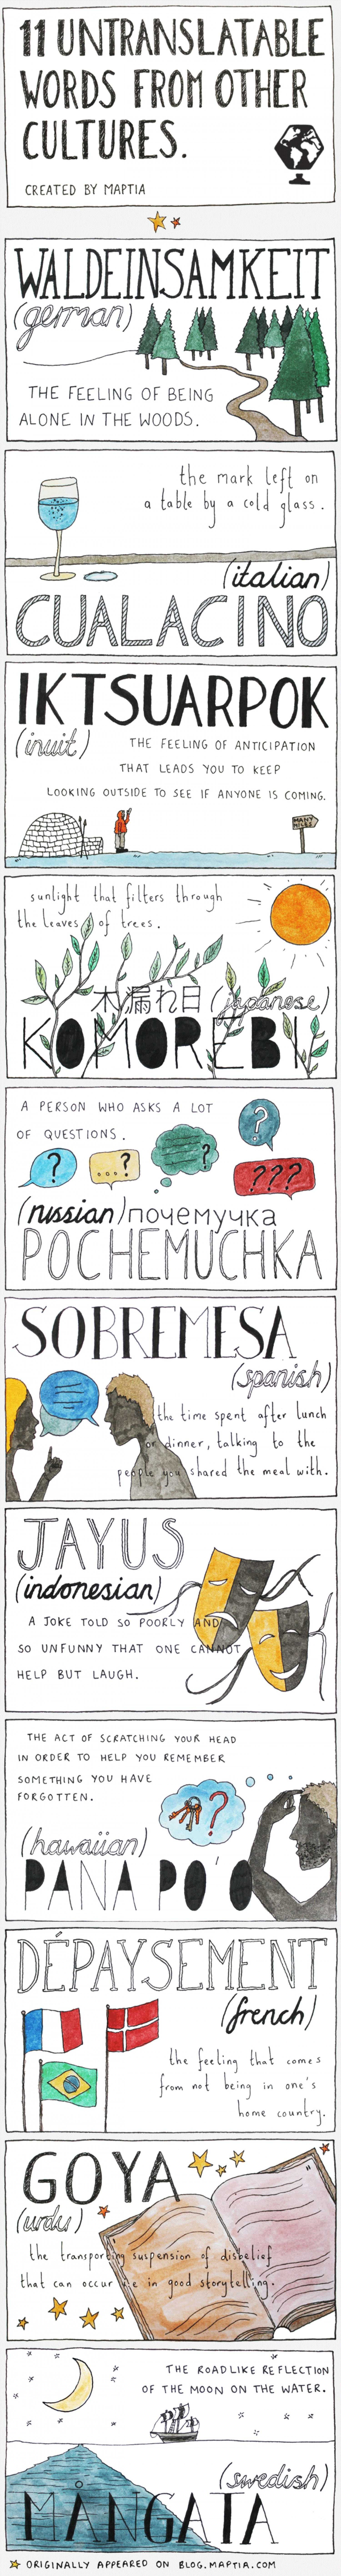 Untranslatable Words From Other Cultures